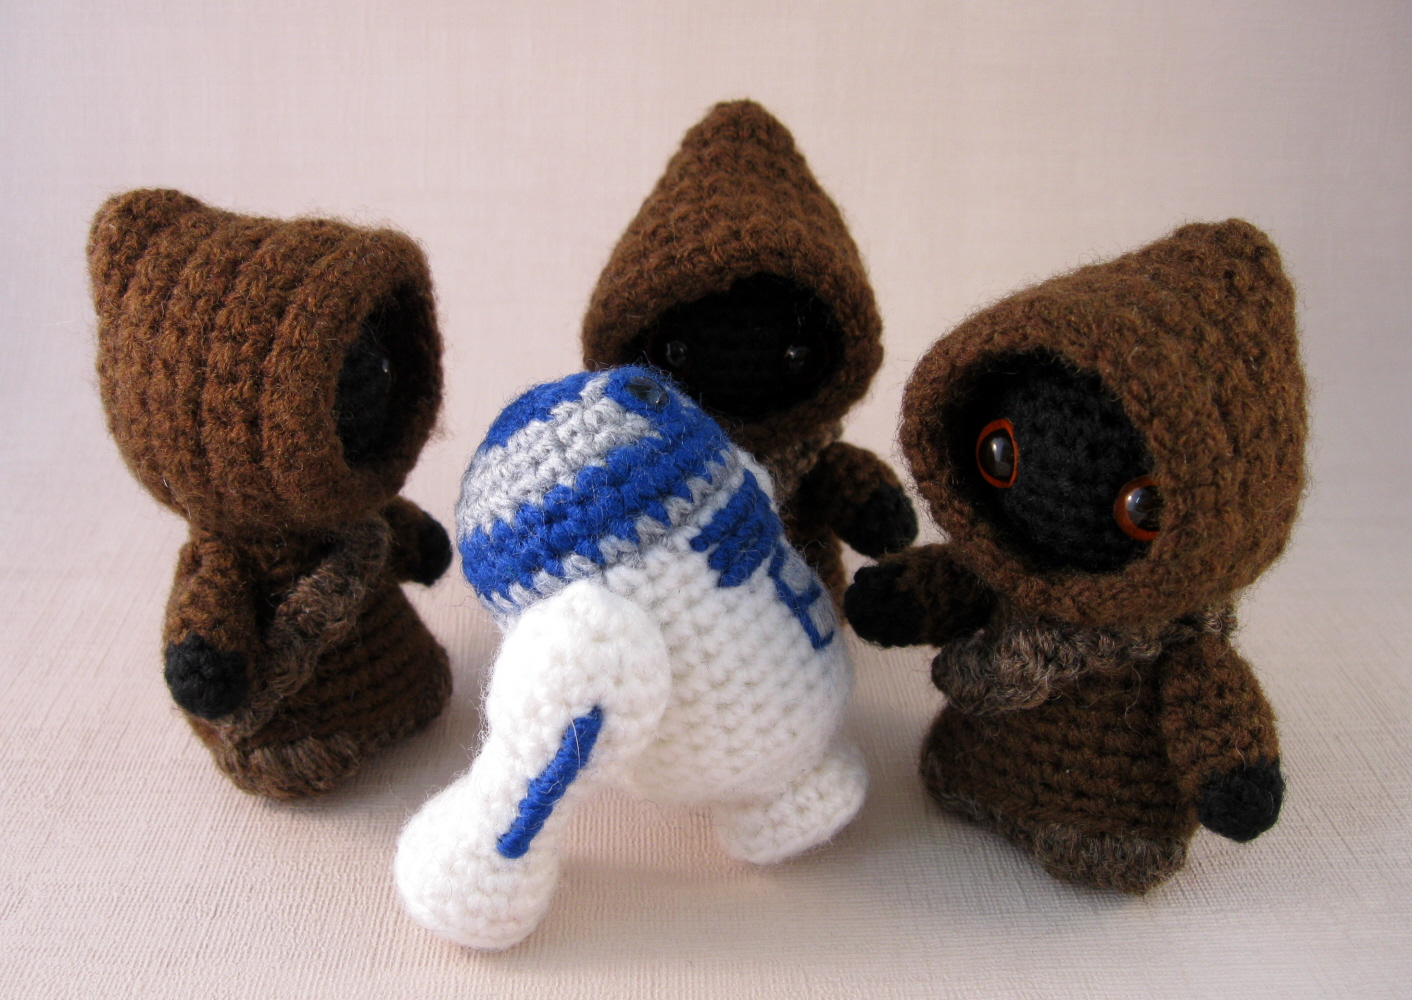 LucyRavenscar - Crochet Creatures: Utini! Its a new Jawa ...